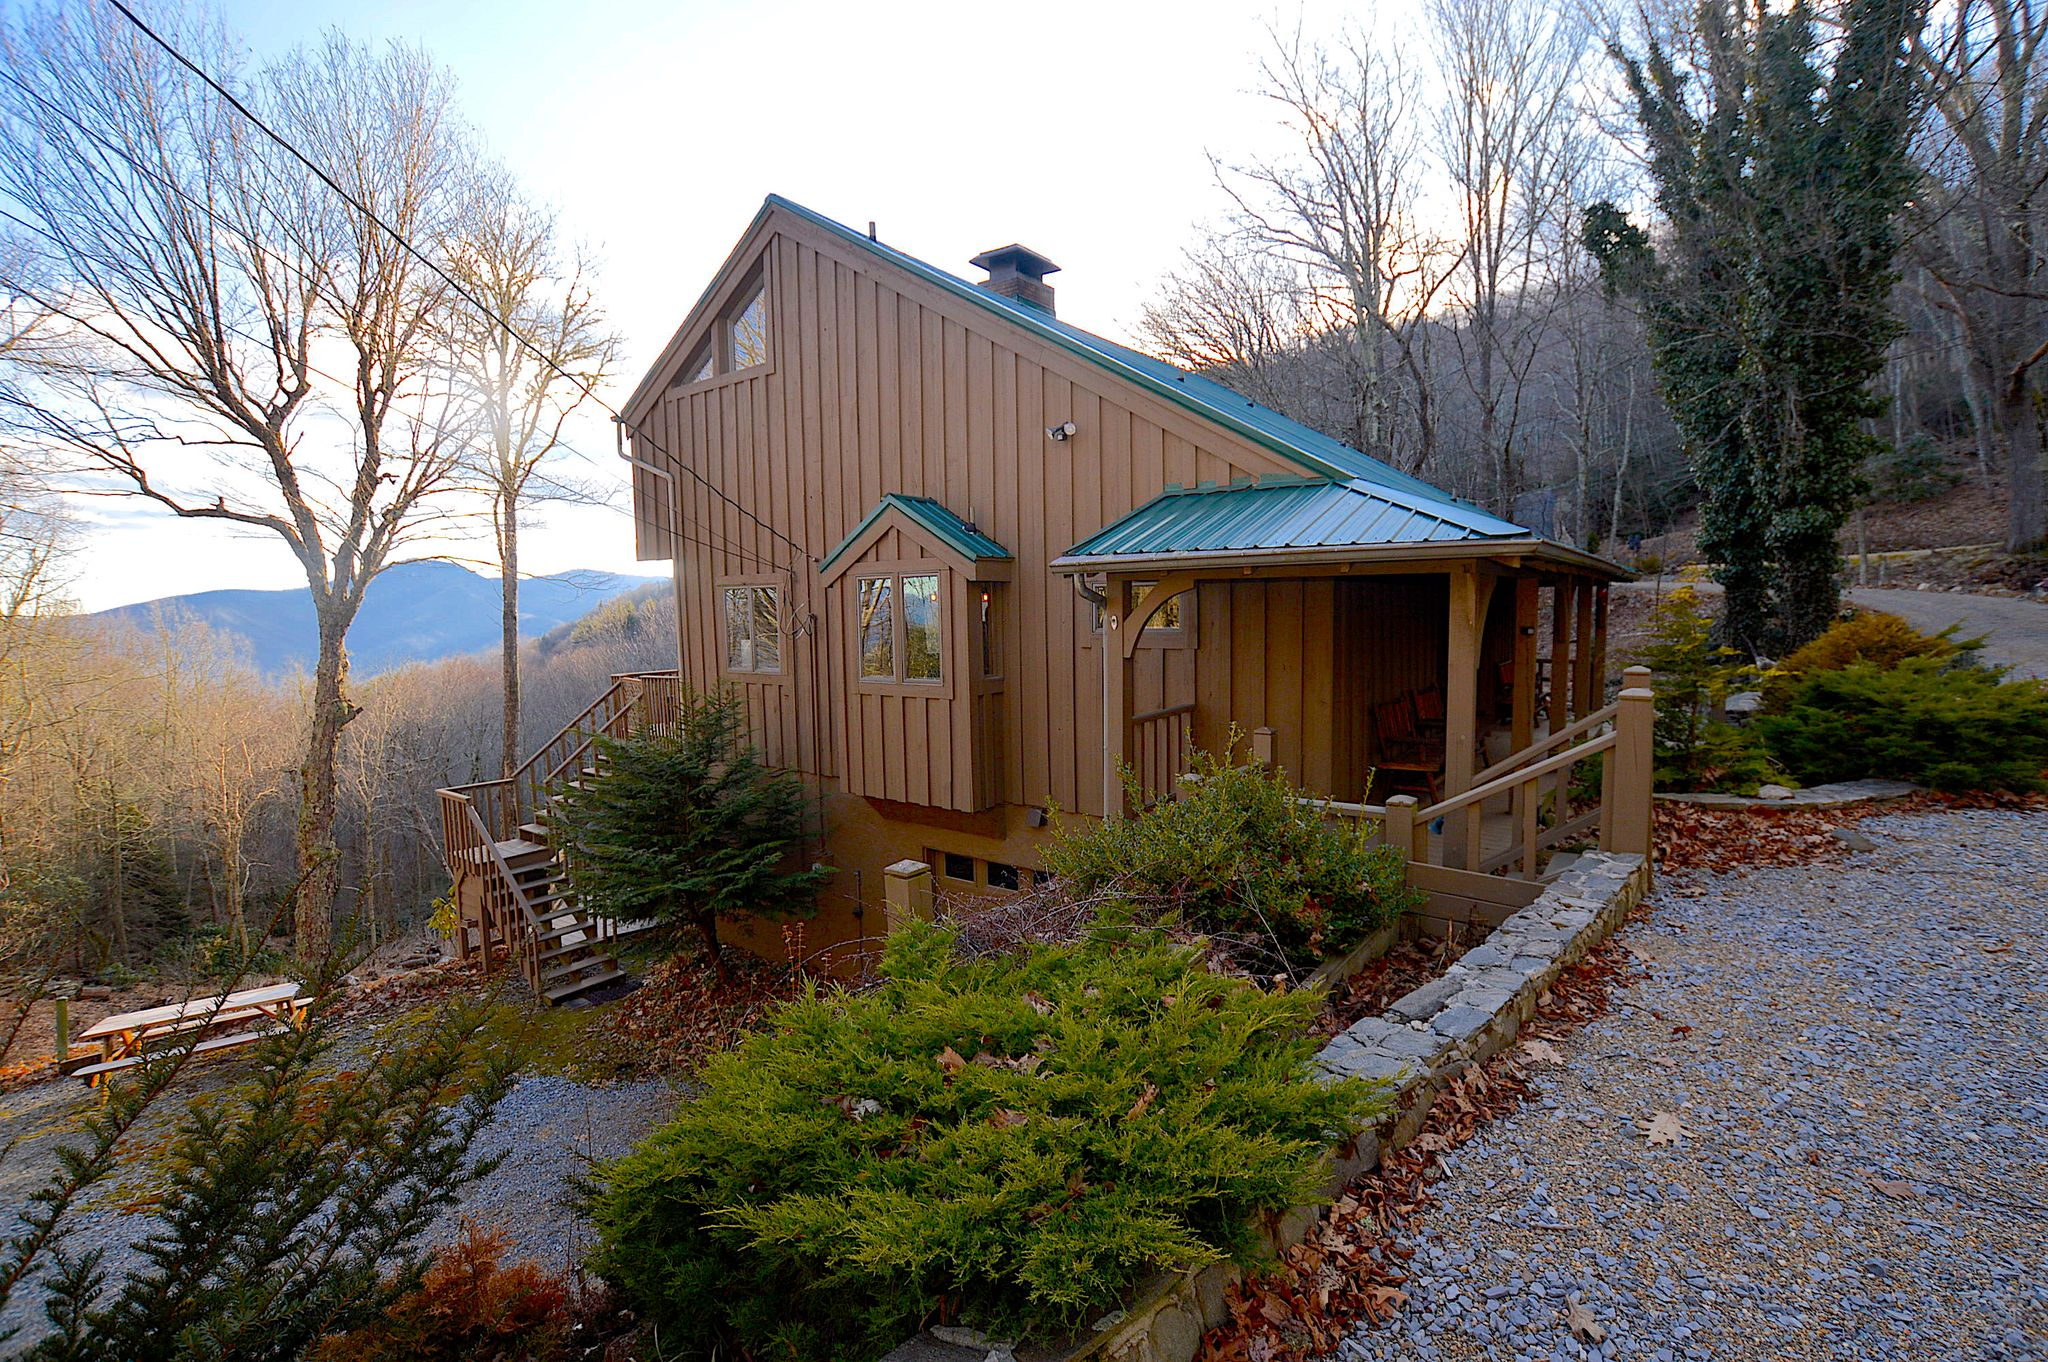 home hotel com maggie creek gallery cabin vacation cabins image booking nc rentals us property valley misty this of log